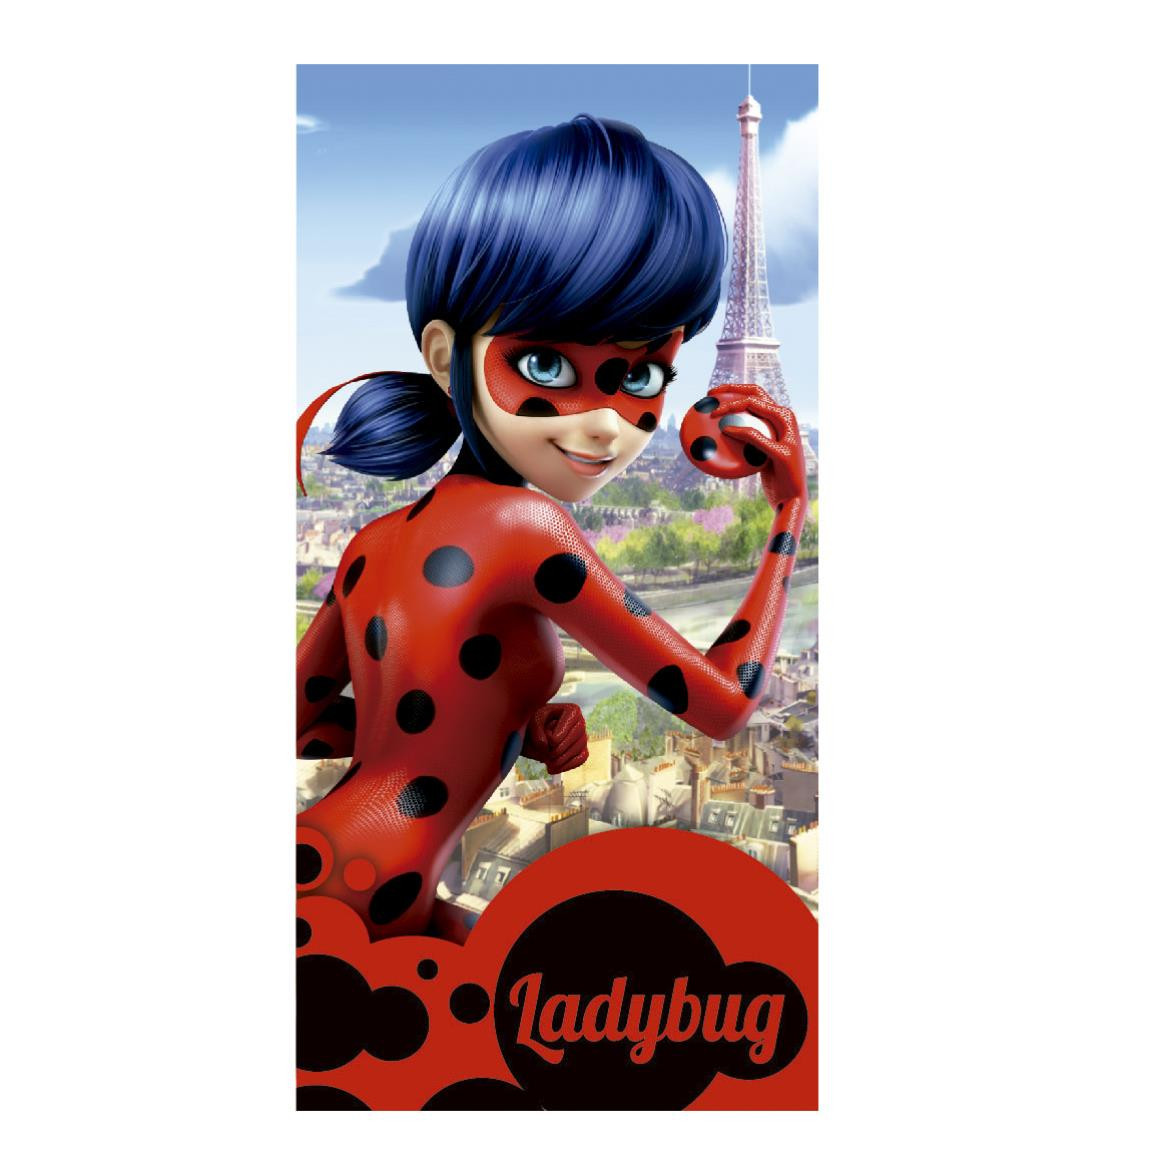 Towel child Edition Ladybug in Paris, Home and more